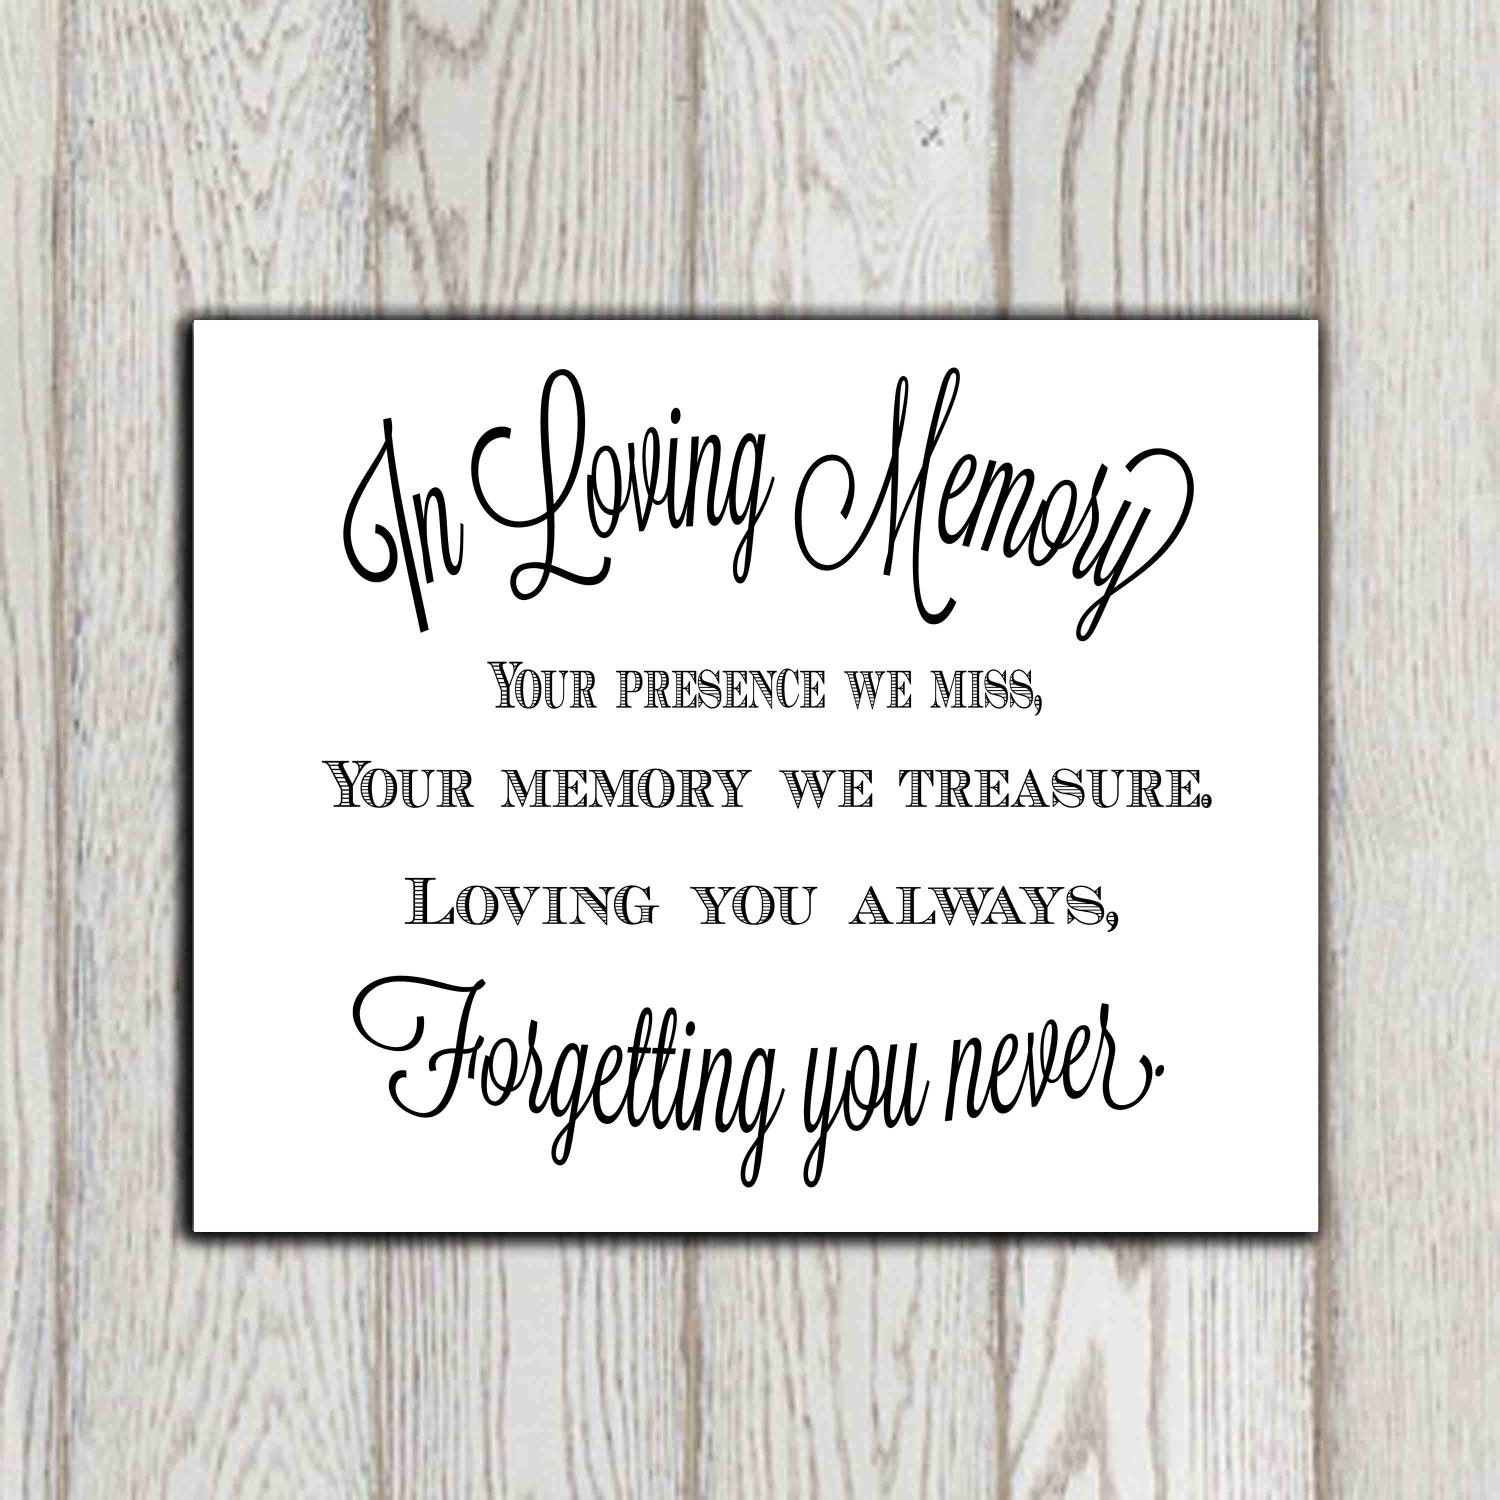 in loving memory of print memorial table wedding memorial sign, Powerpoint templates